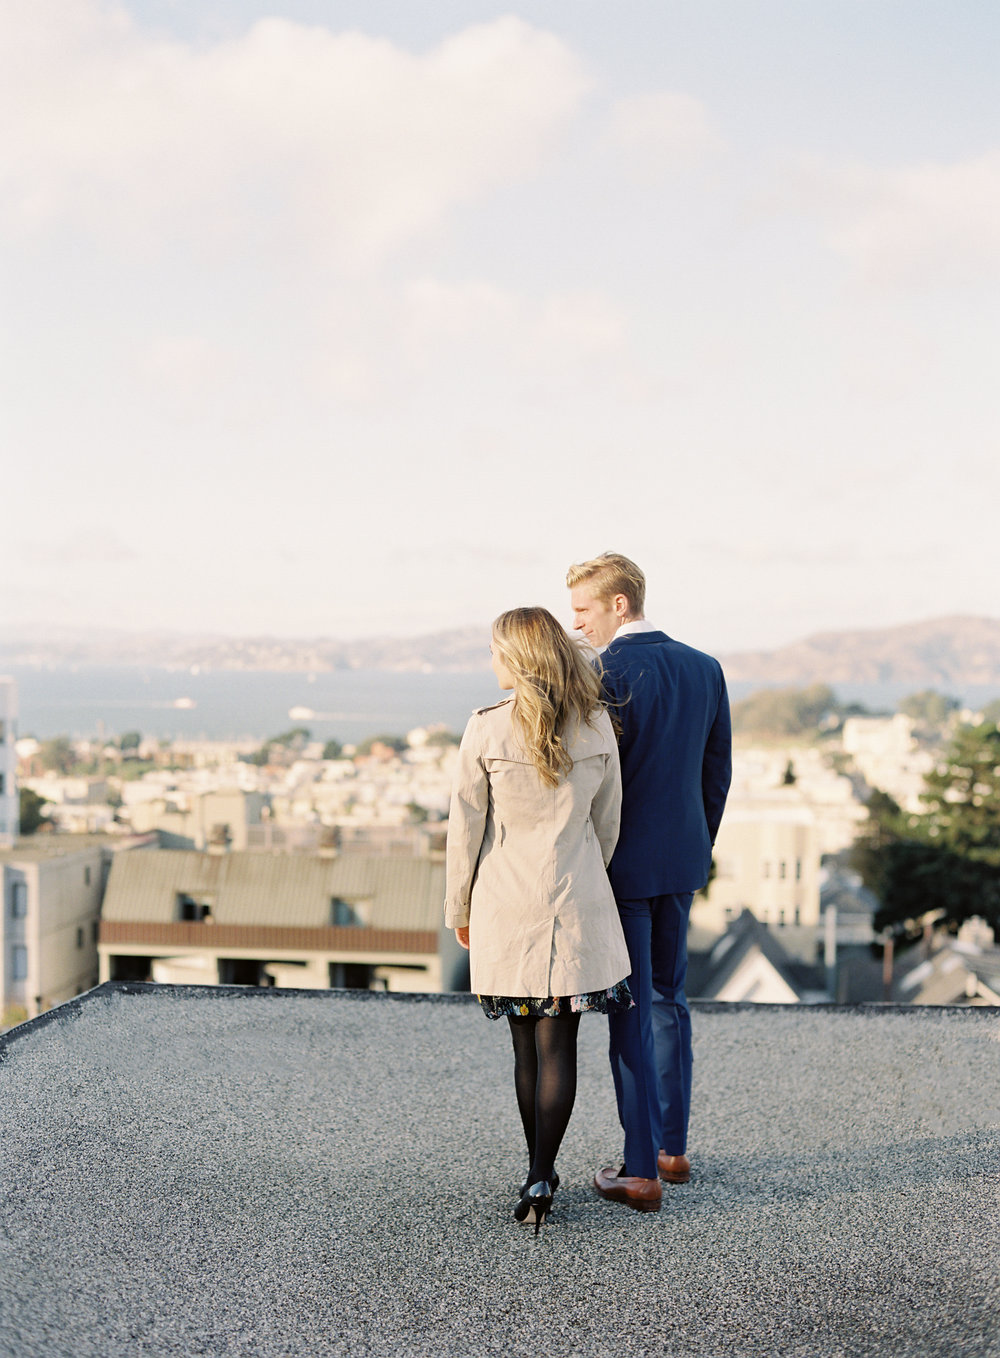 Jessica and Andrew Engagement-Carrie King Photographer-107.jpg